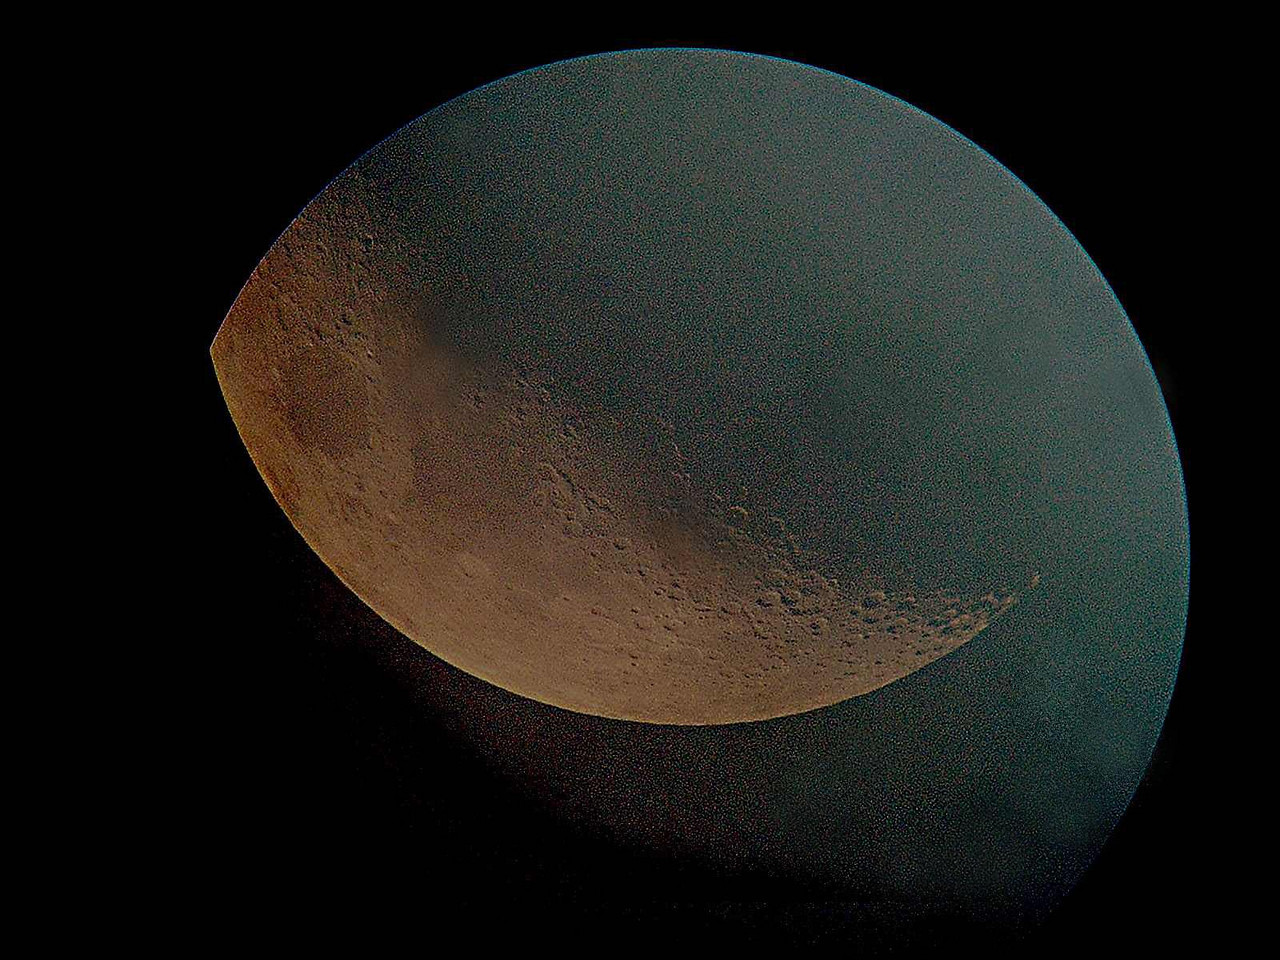 """Here's a bit of artistic work of the moon by Dan McKeel.  4""""f10 refractor HP digital, Photoshop Prime focus through clouds and a 12.5 mm eyepiece."""